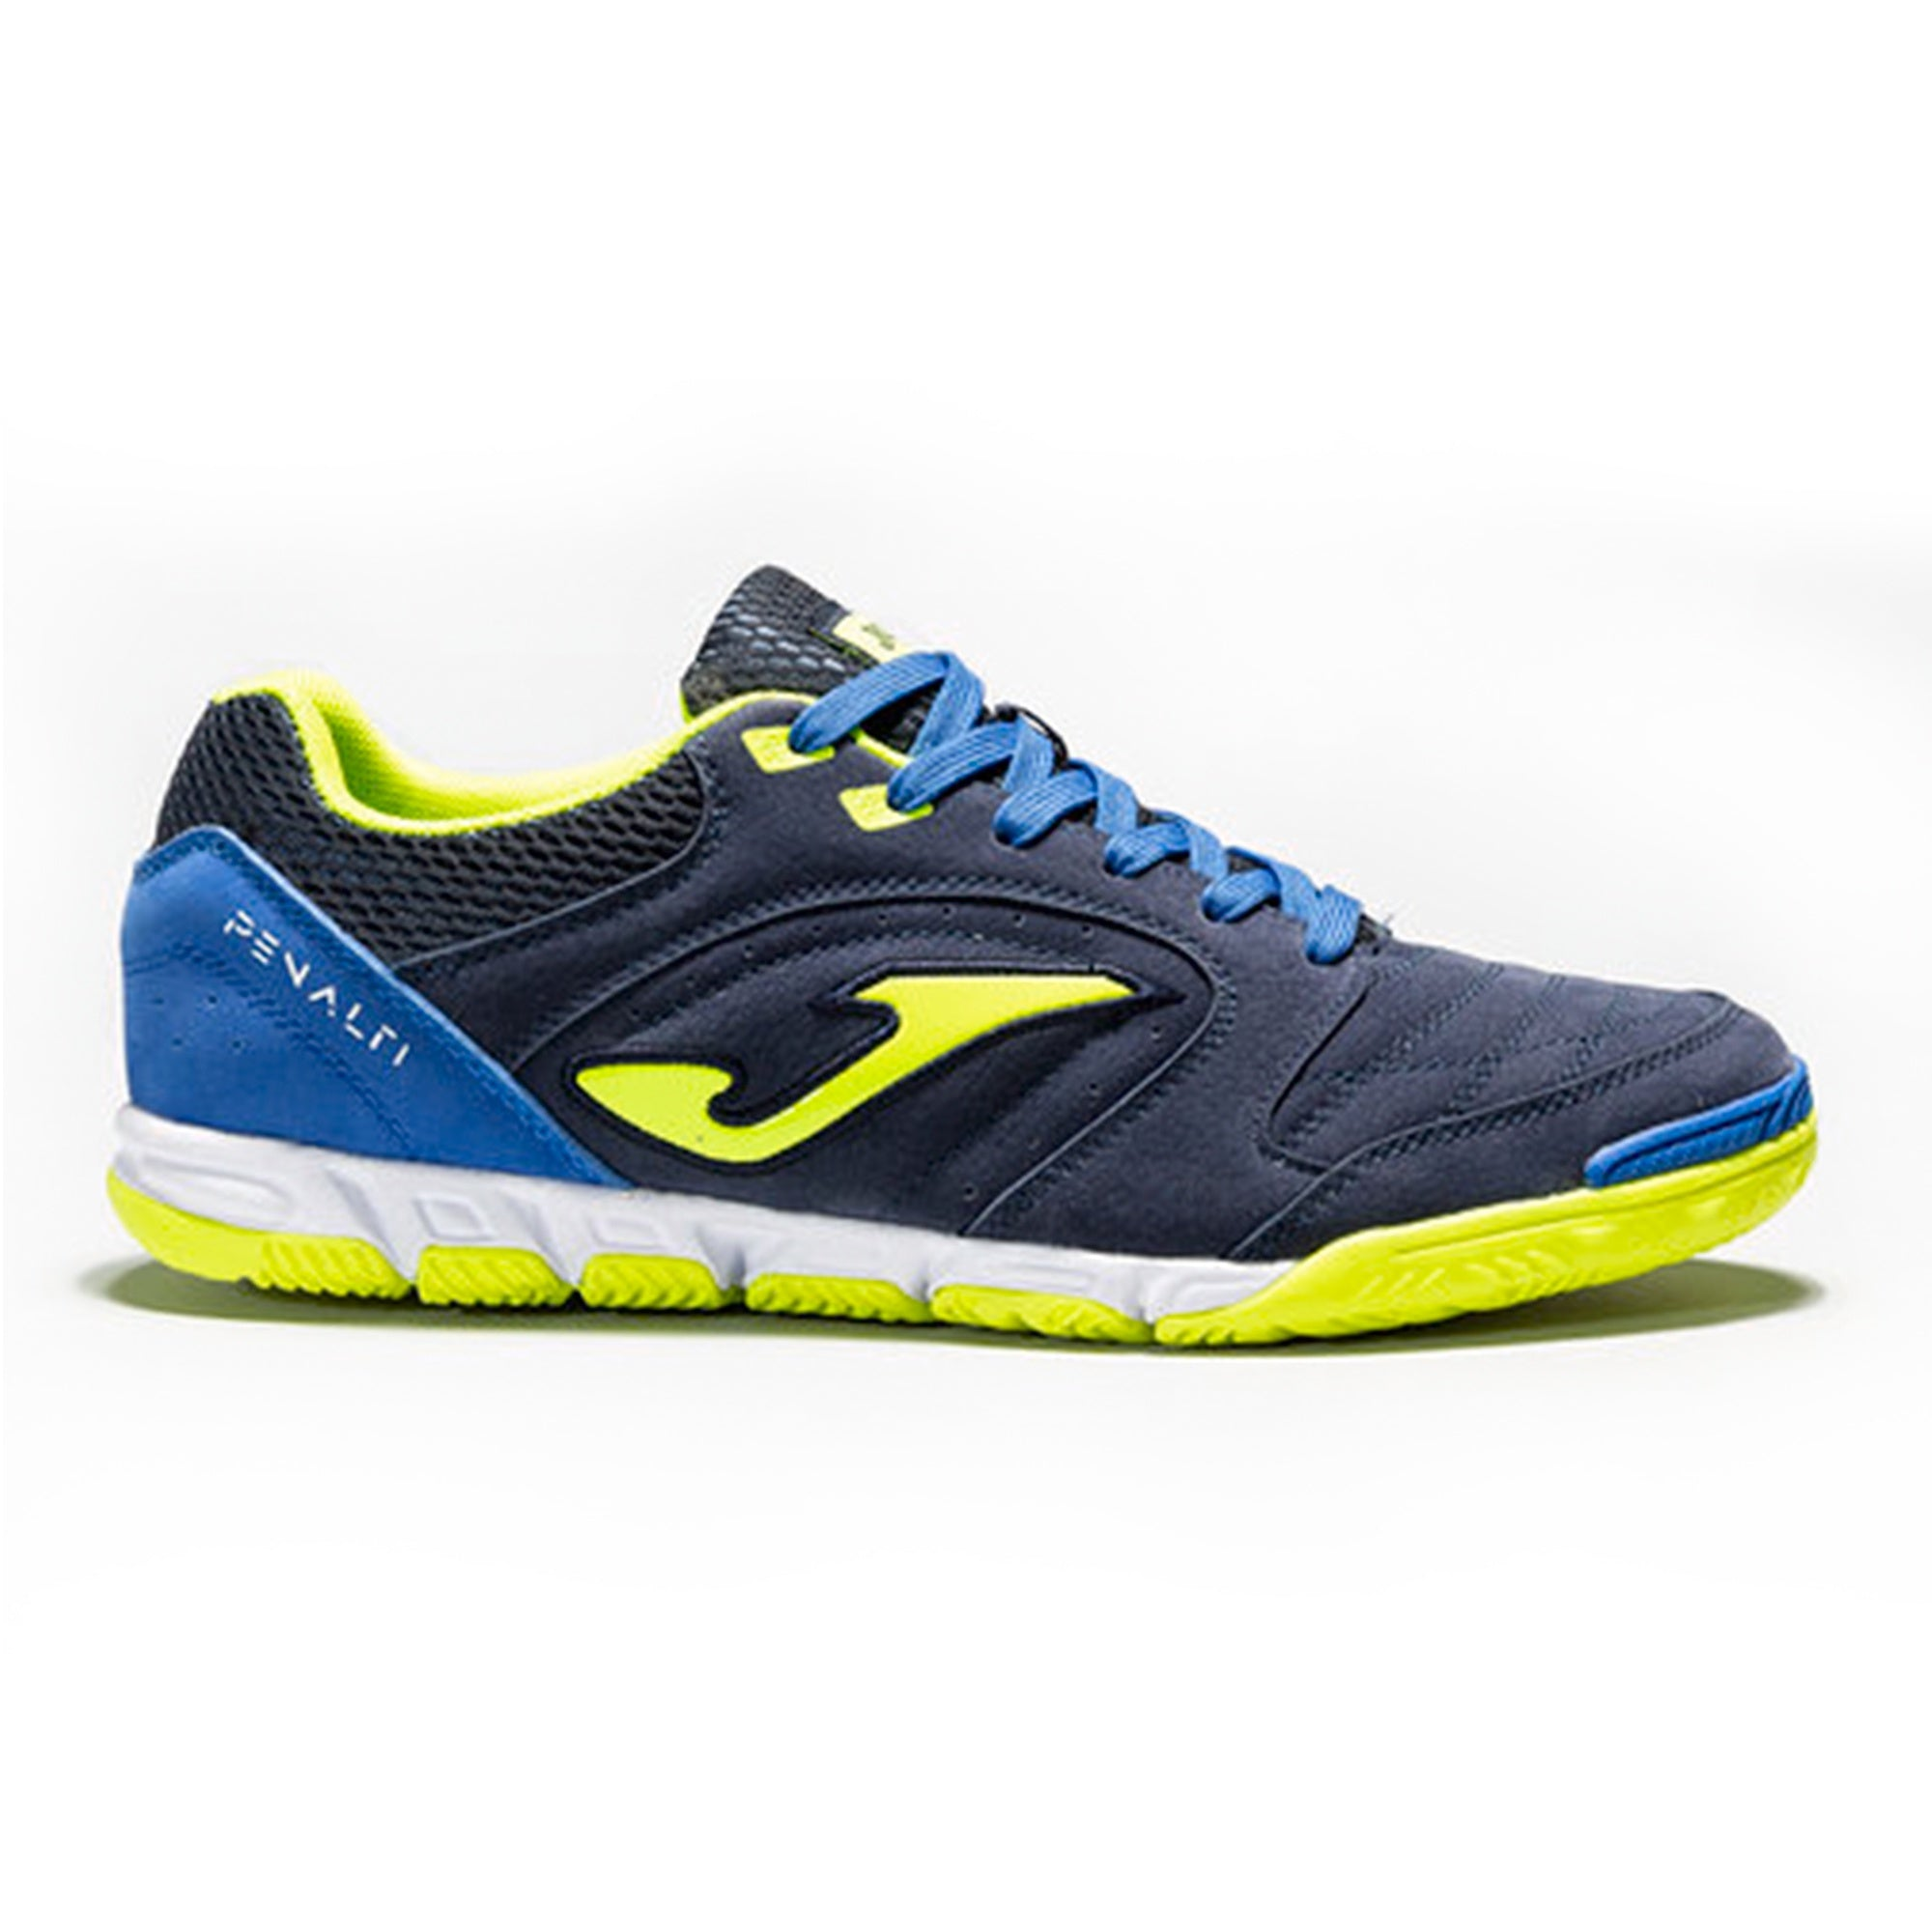 PENALTI 903 NAVY-ROYAL-FLUOR INDOOR